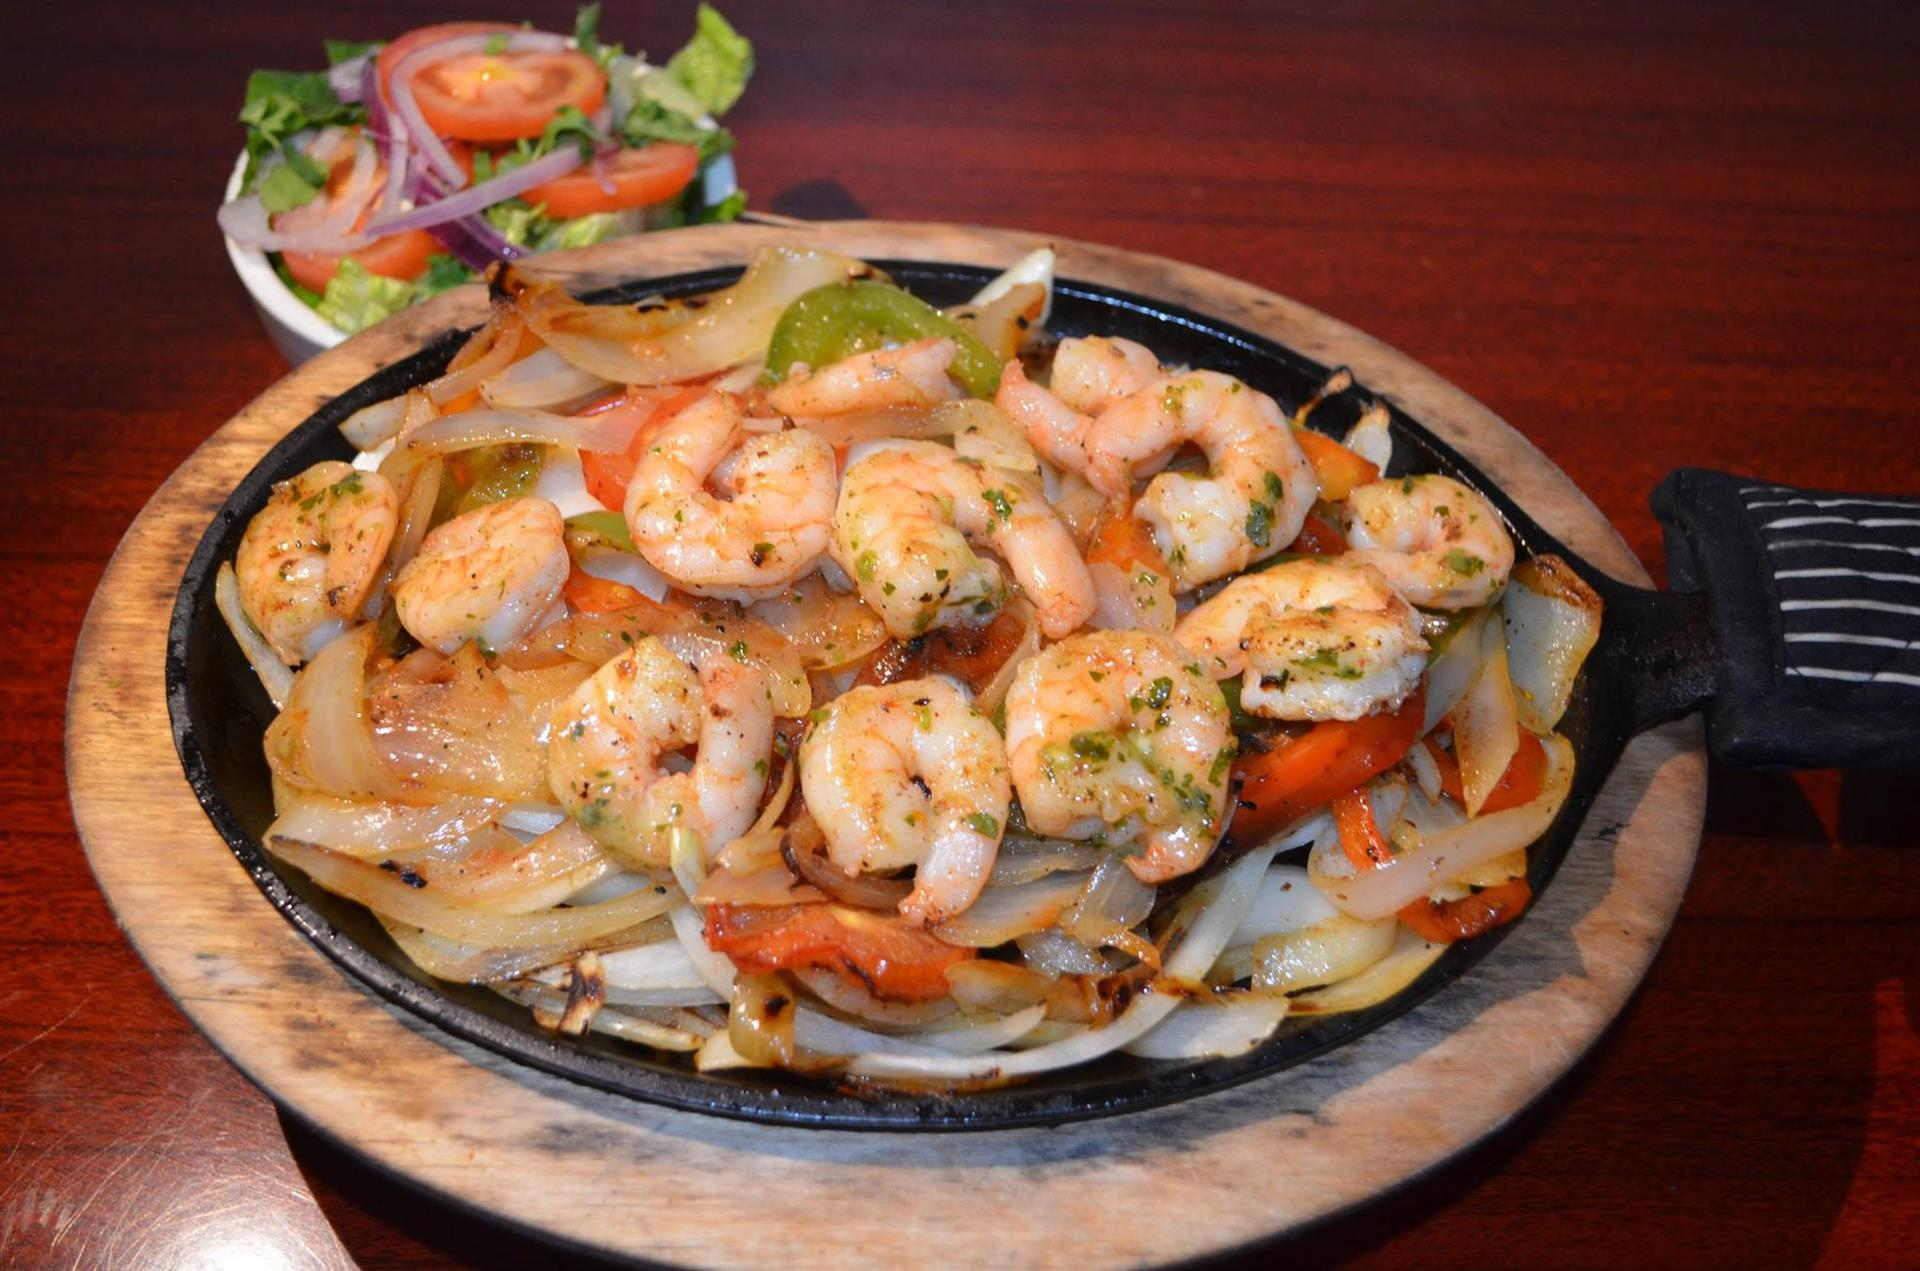 grilled shrimp, onions and peppers